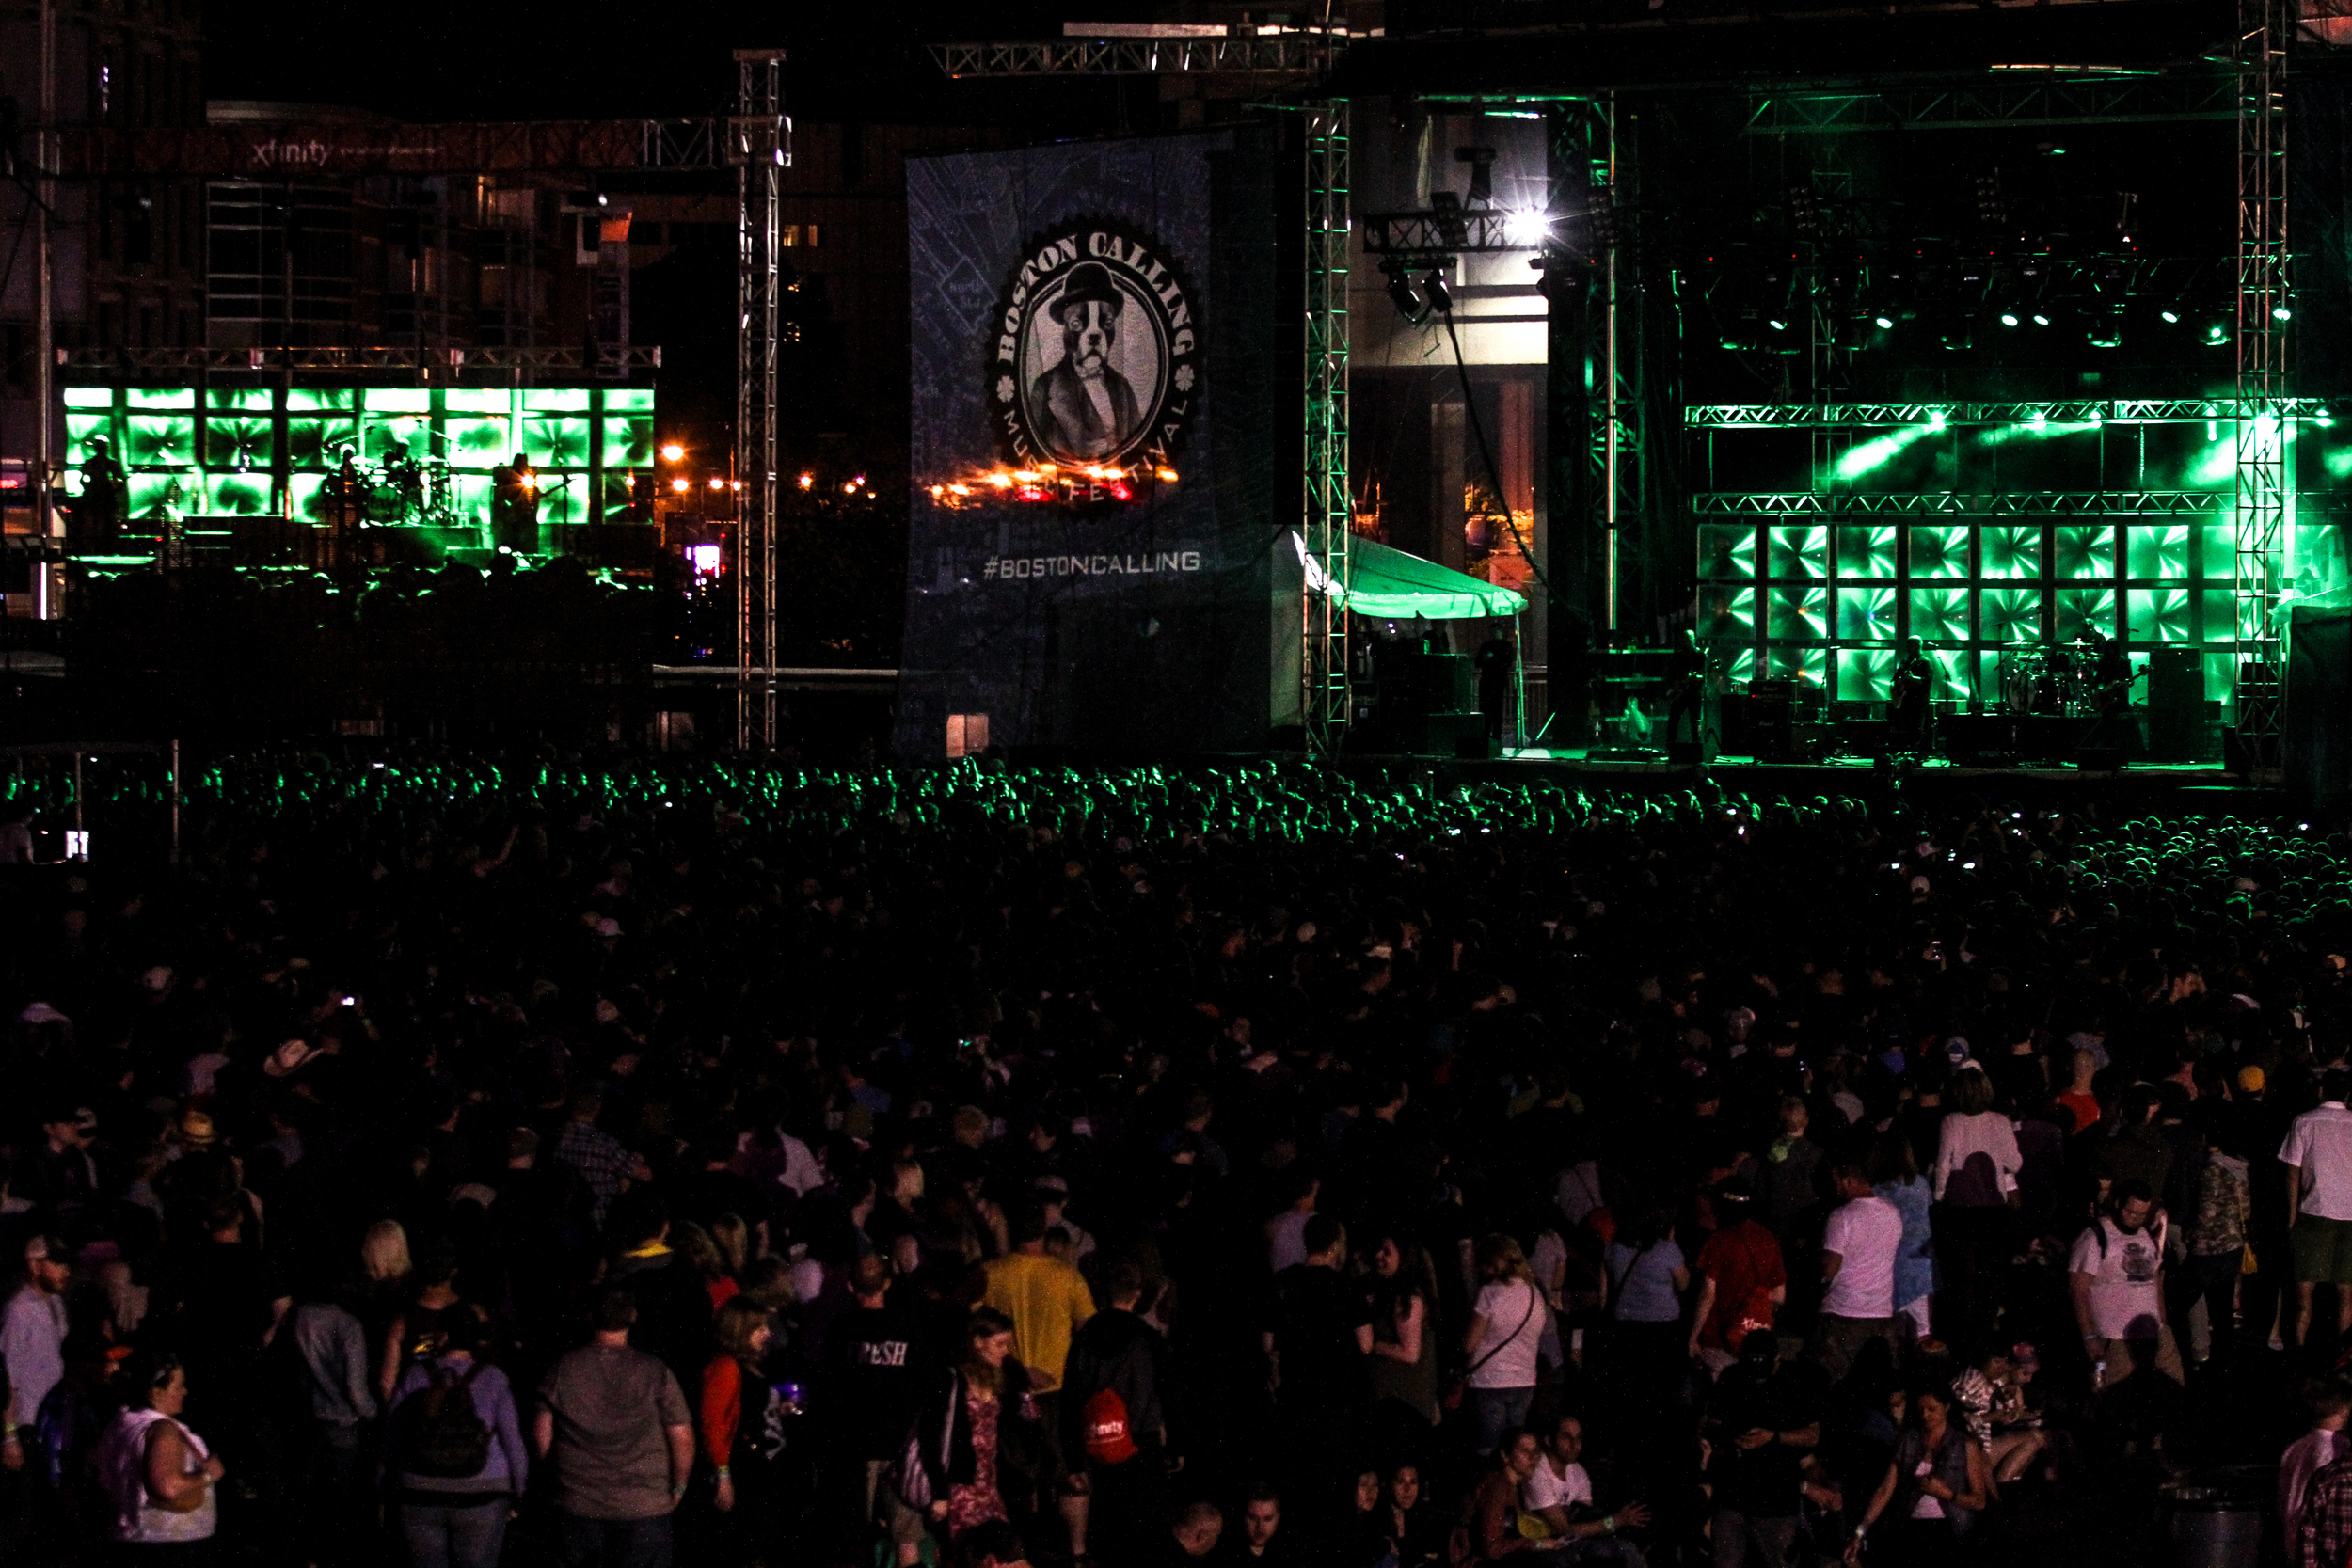 Hundreds of attendees listen to The Pixies' set, the last act of Boston Calling on May 24, 2015 in City Hall Plaza.